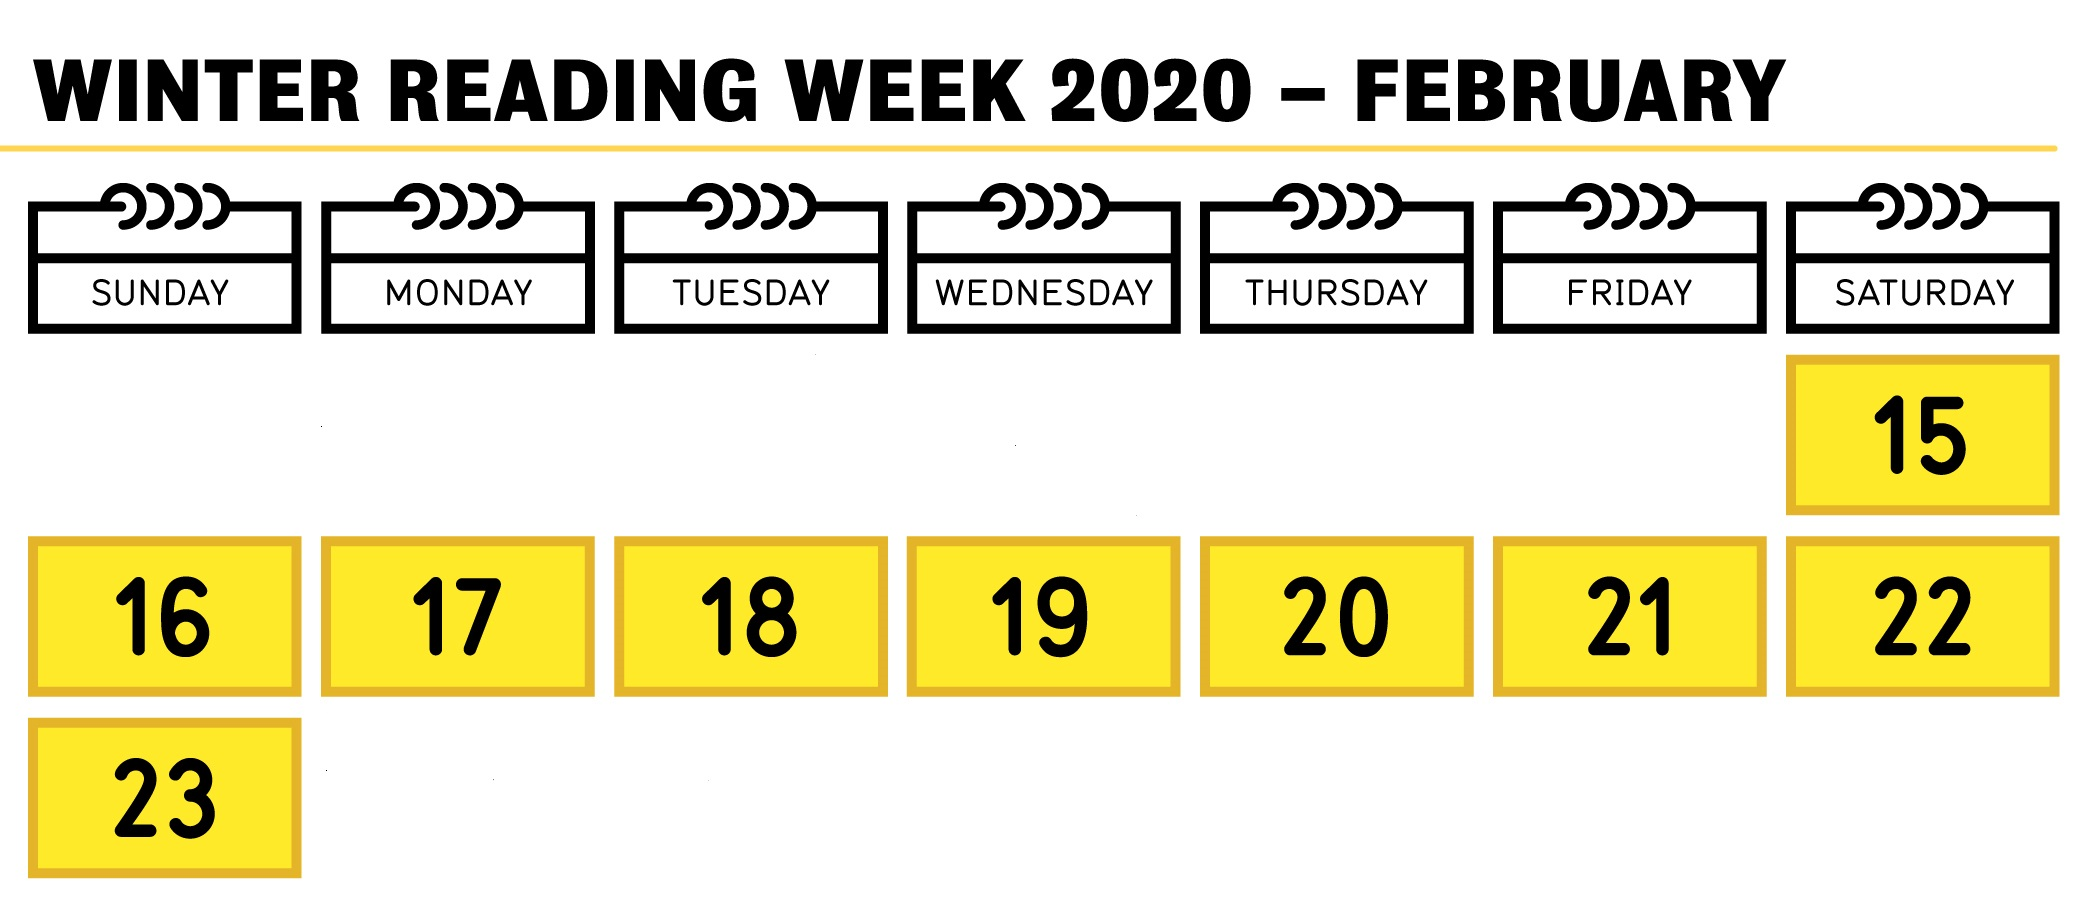 Winter Reading Week 2020 February 15 to 23